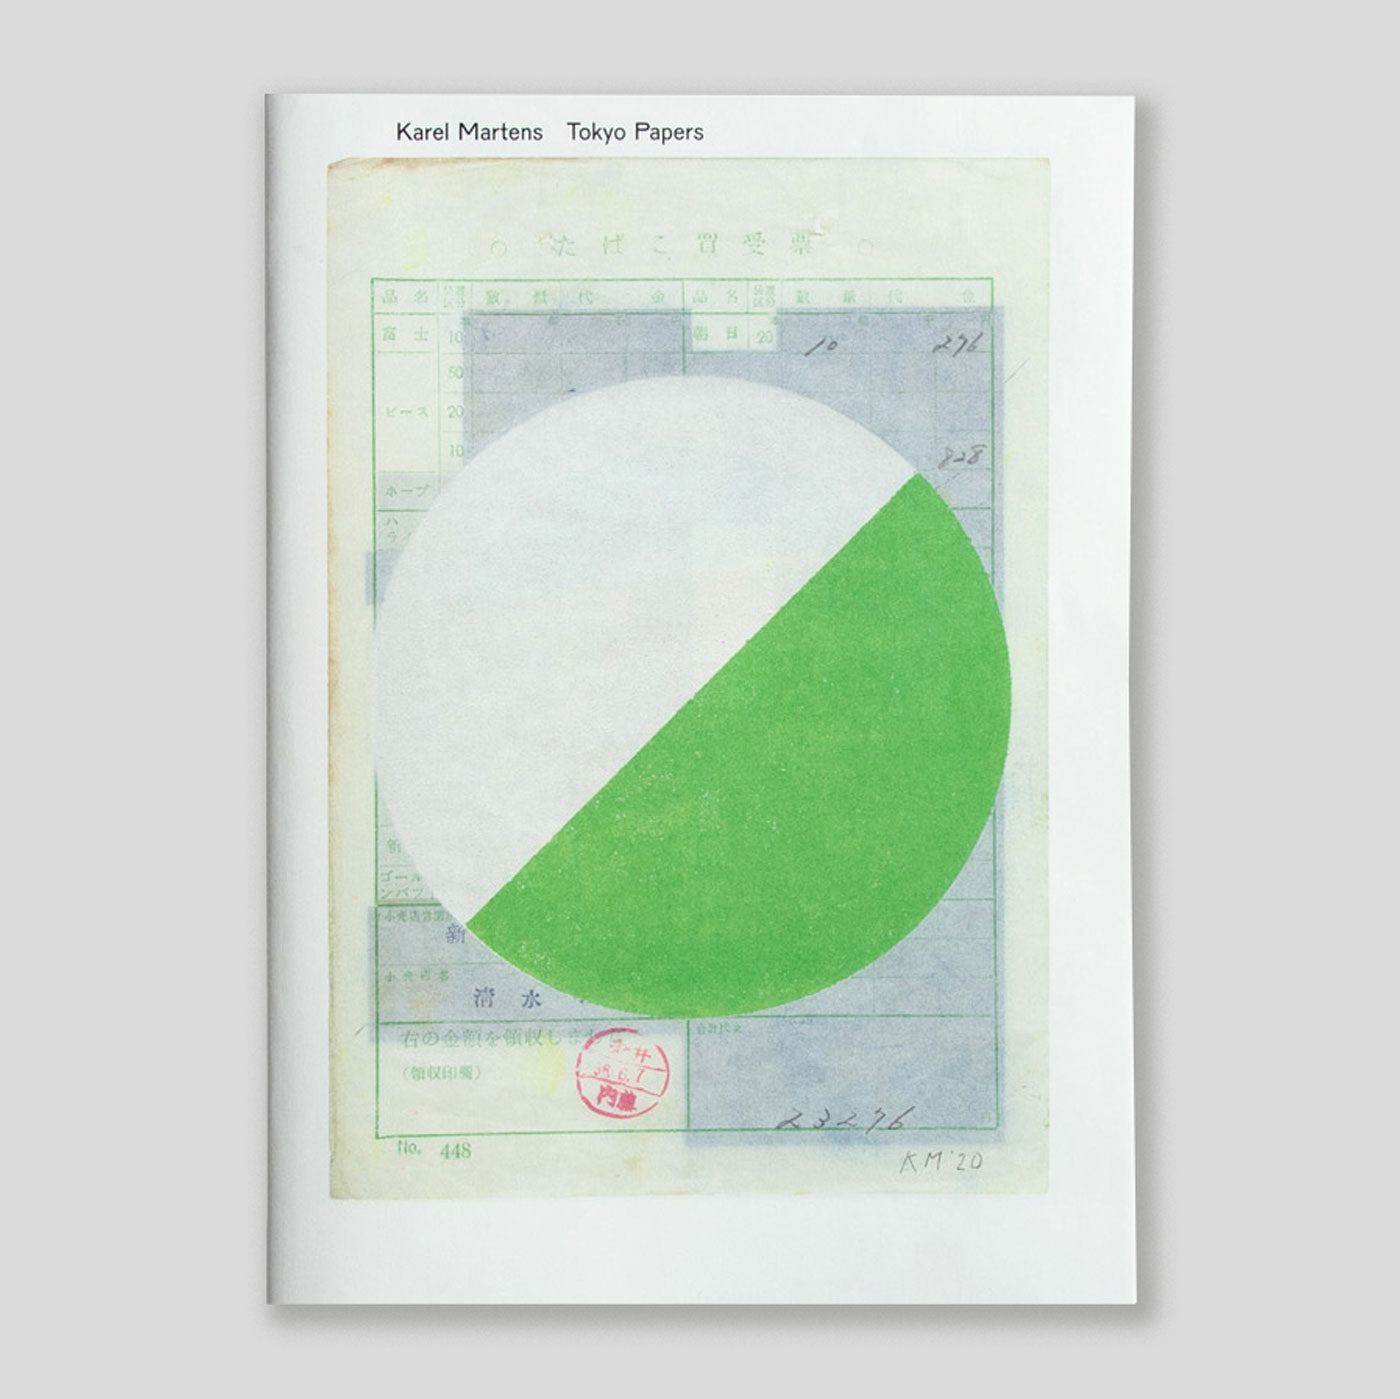 Tokyo Papers | Karel Martens | Colours May Vary